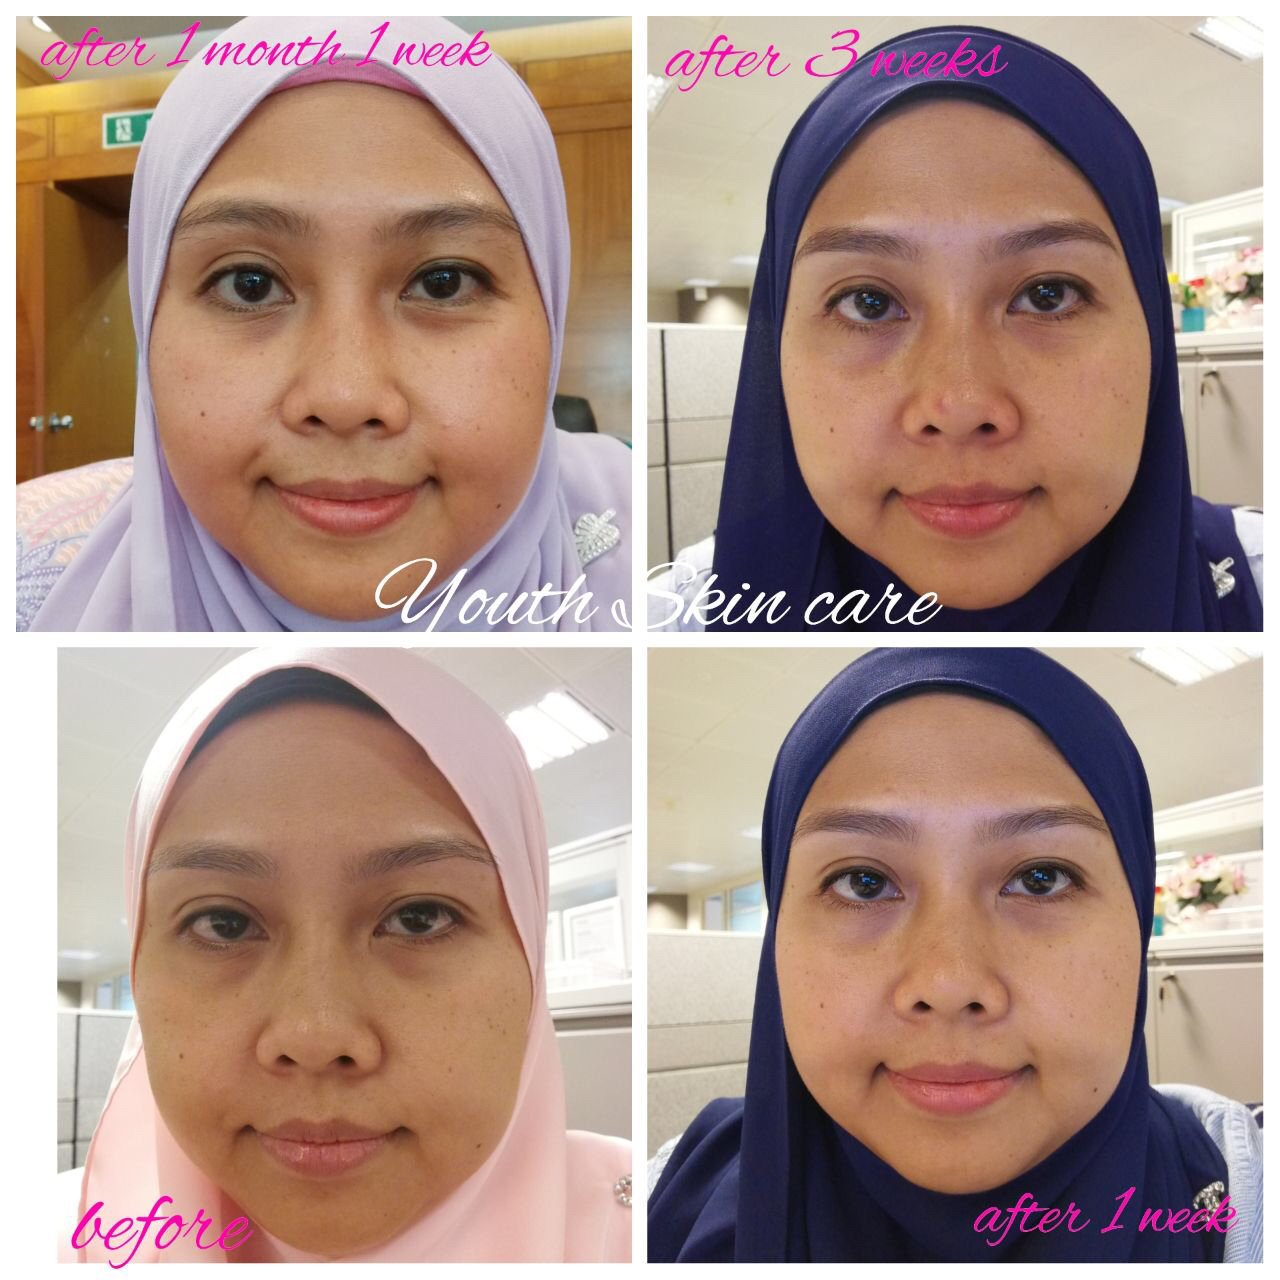 harga youth skincare shaklee  youth skincare shaklee review  pakai youth shaklee naik jerawat  kelebihan youth skincare shaklee  pengalaman guna youth shaklee.  youth shaklee vs mary kay youth shaklee price  pengalaman guna youth shaklee.  youth shaklee cleanser  youth shaklee review  pakai youth shaklee naik jerawat  youth shaklee testimoni  youth shaklee vs mary kay set jeragat shaklee pengalaman guna youth shaklee. testimoni youth shaklee harga youth skincare shaklee pakai youth shaklee naik jerawat serum youth shaklee toner youth shaklee testimoni cleanser youth shaklee testimoni serum youth shaklee harga serum youth shaklee cara pakai serum youth shaklee shaklee youth serum reviews testimoni serum shaklee pengalaman guna youth shaklee. night cream youth shaklee youth shaklee testimoni harga skincare youth shaklee pakai youth shaklee naik jerawat pengalaman guna youth shaklee. youth shaklee cleanser youth shaklee vs mary kay youth skincare shaklee review youth shaklee untuk jeragat kelebihan youth skincare shaklee  youth shaklee untuk jeragat  shaklee youth skincare reviews  youth shaklee cleanser